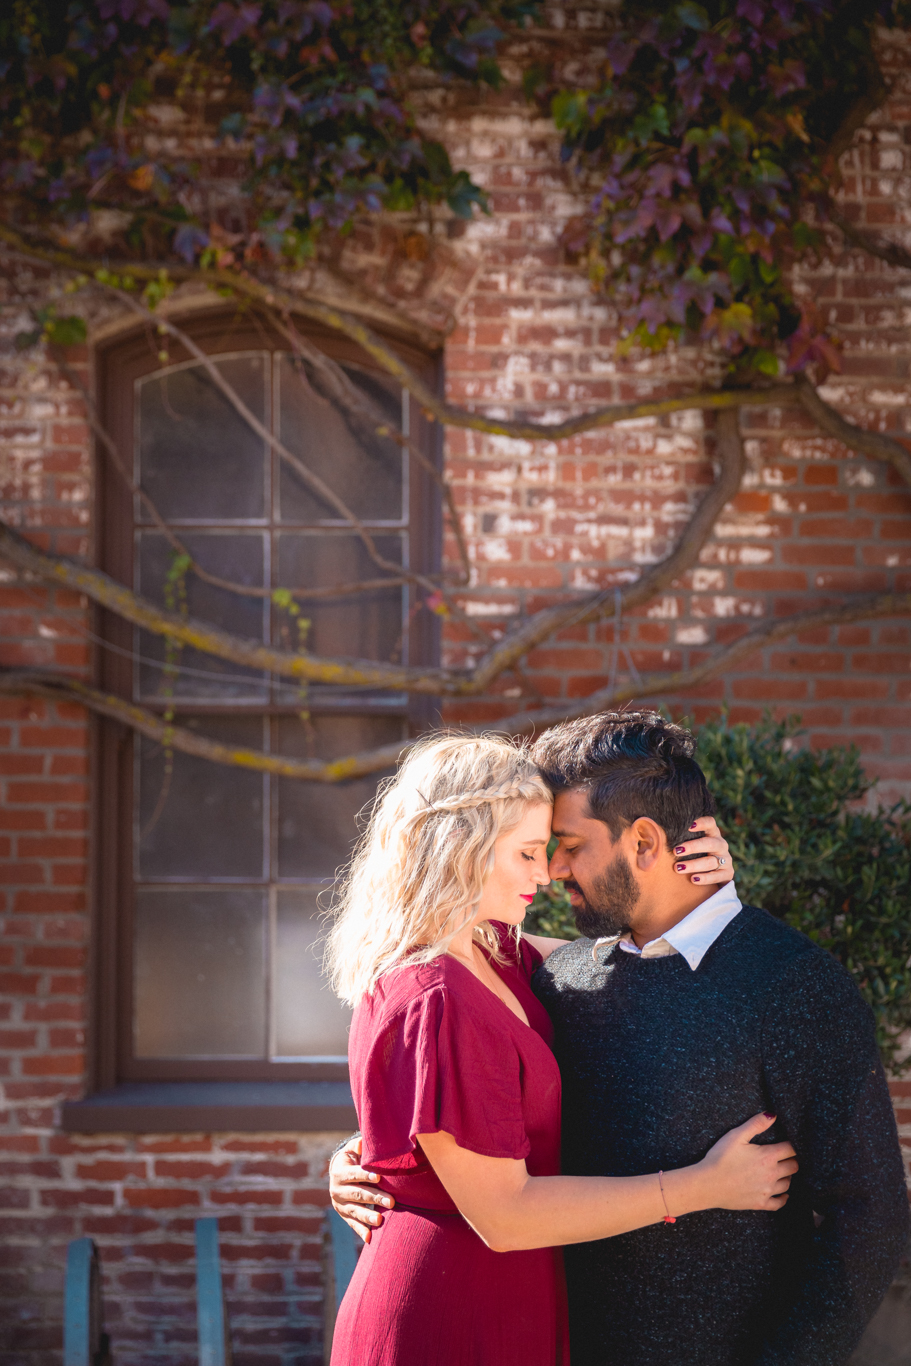 2018.12.03_Ashir-and-Emily-Engagement-Photography-@heymikefrancis-napa-valley-wedding-sacremento-california-heyfrancis-mikefrancis-.jpg